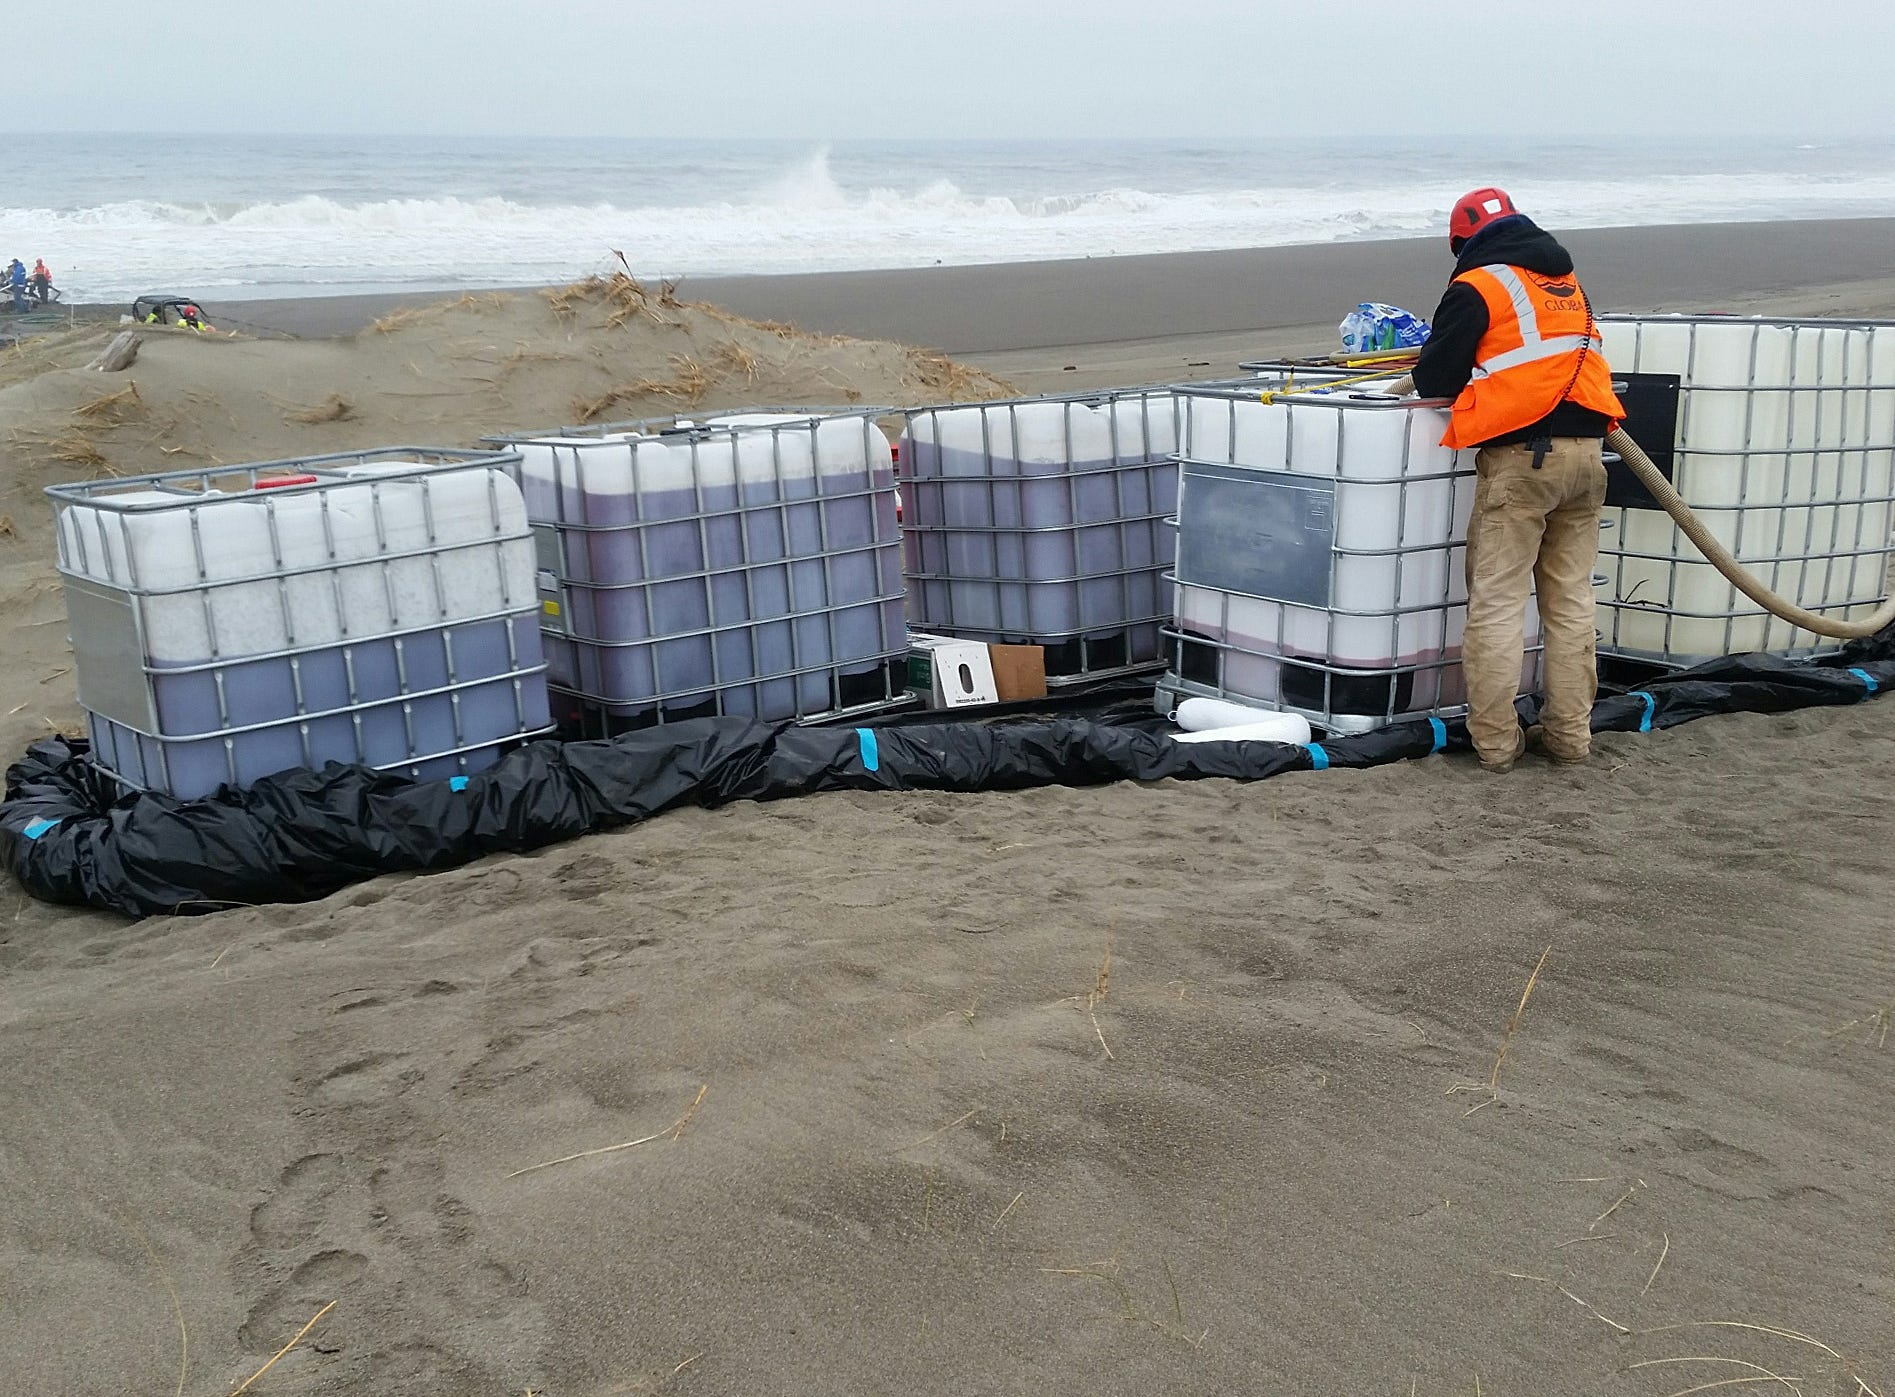 A contracted salvage worker recovers diesel fuel from the wreck of the 64-foot commercial fishing vessel Ann Kathleen on a beach near Bandon, May 4, 2019.